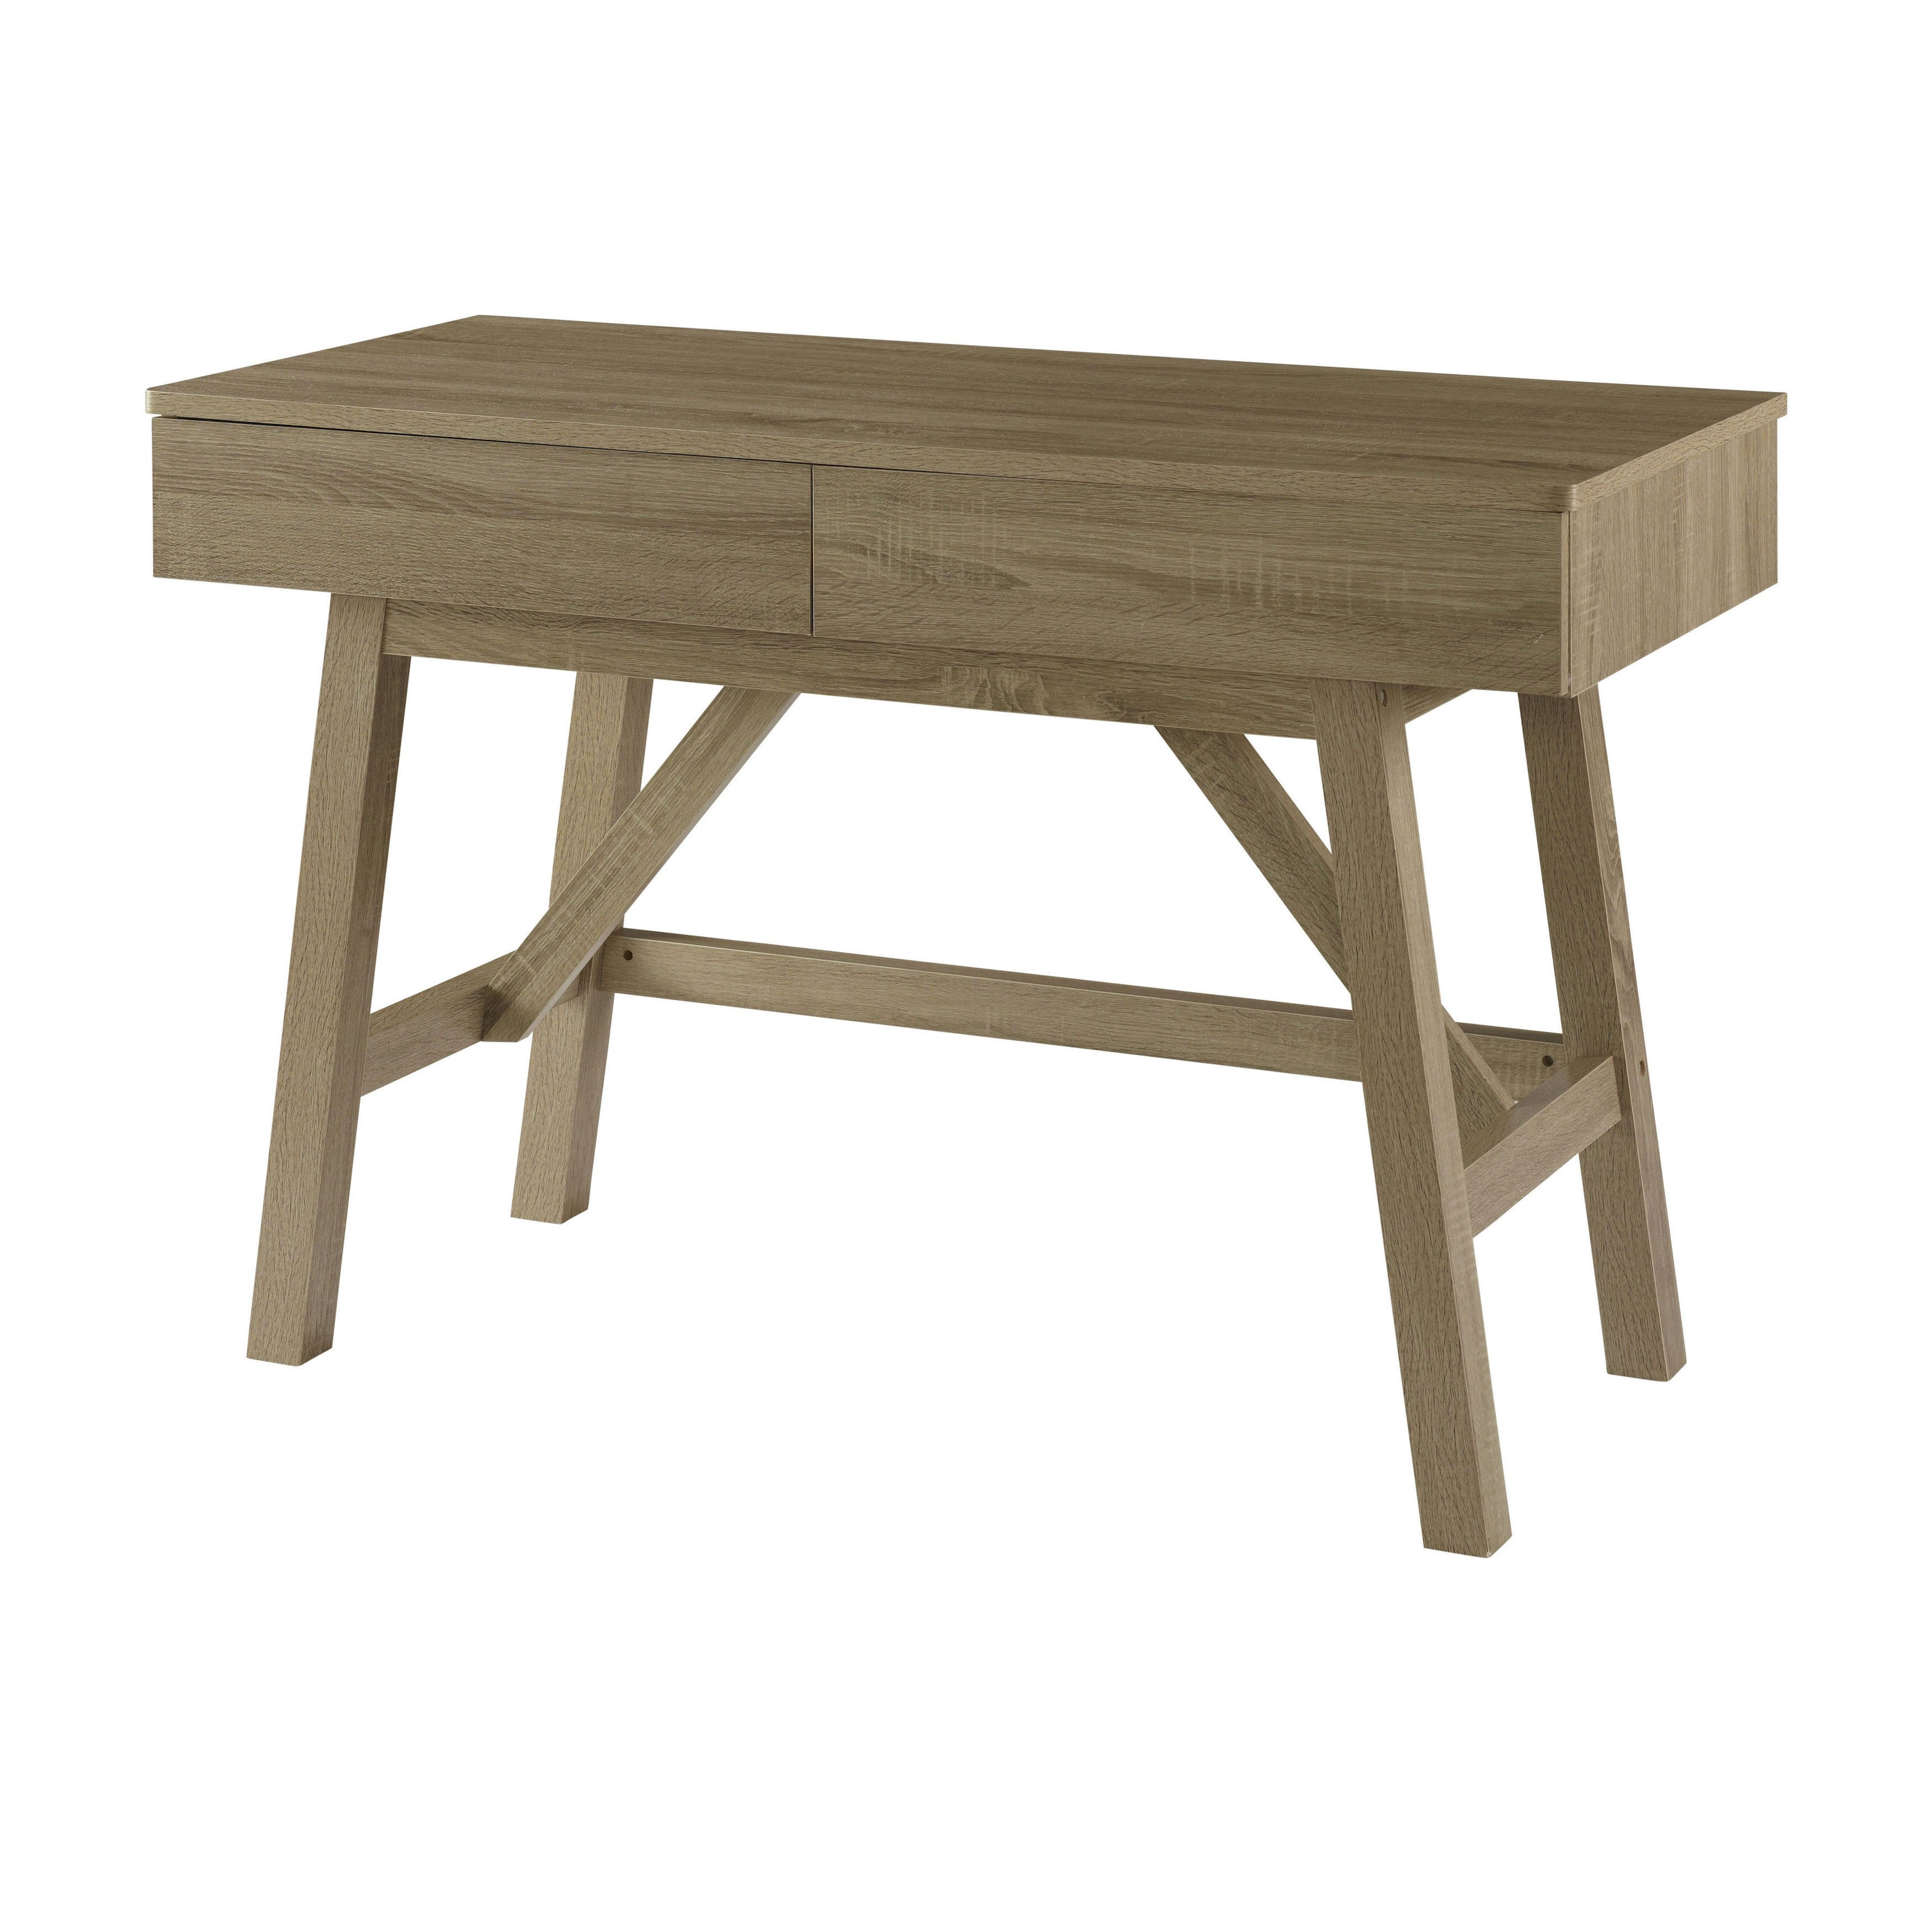 trestle table hire dublin emmafreeman linon desk free shipping today used couches directors chairs kmart wrought iron base gray dinette sets solid wood kitchen tables extending